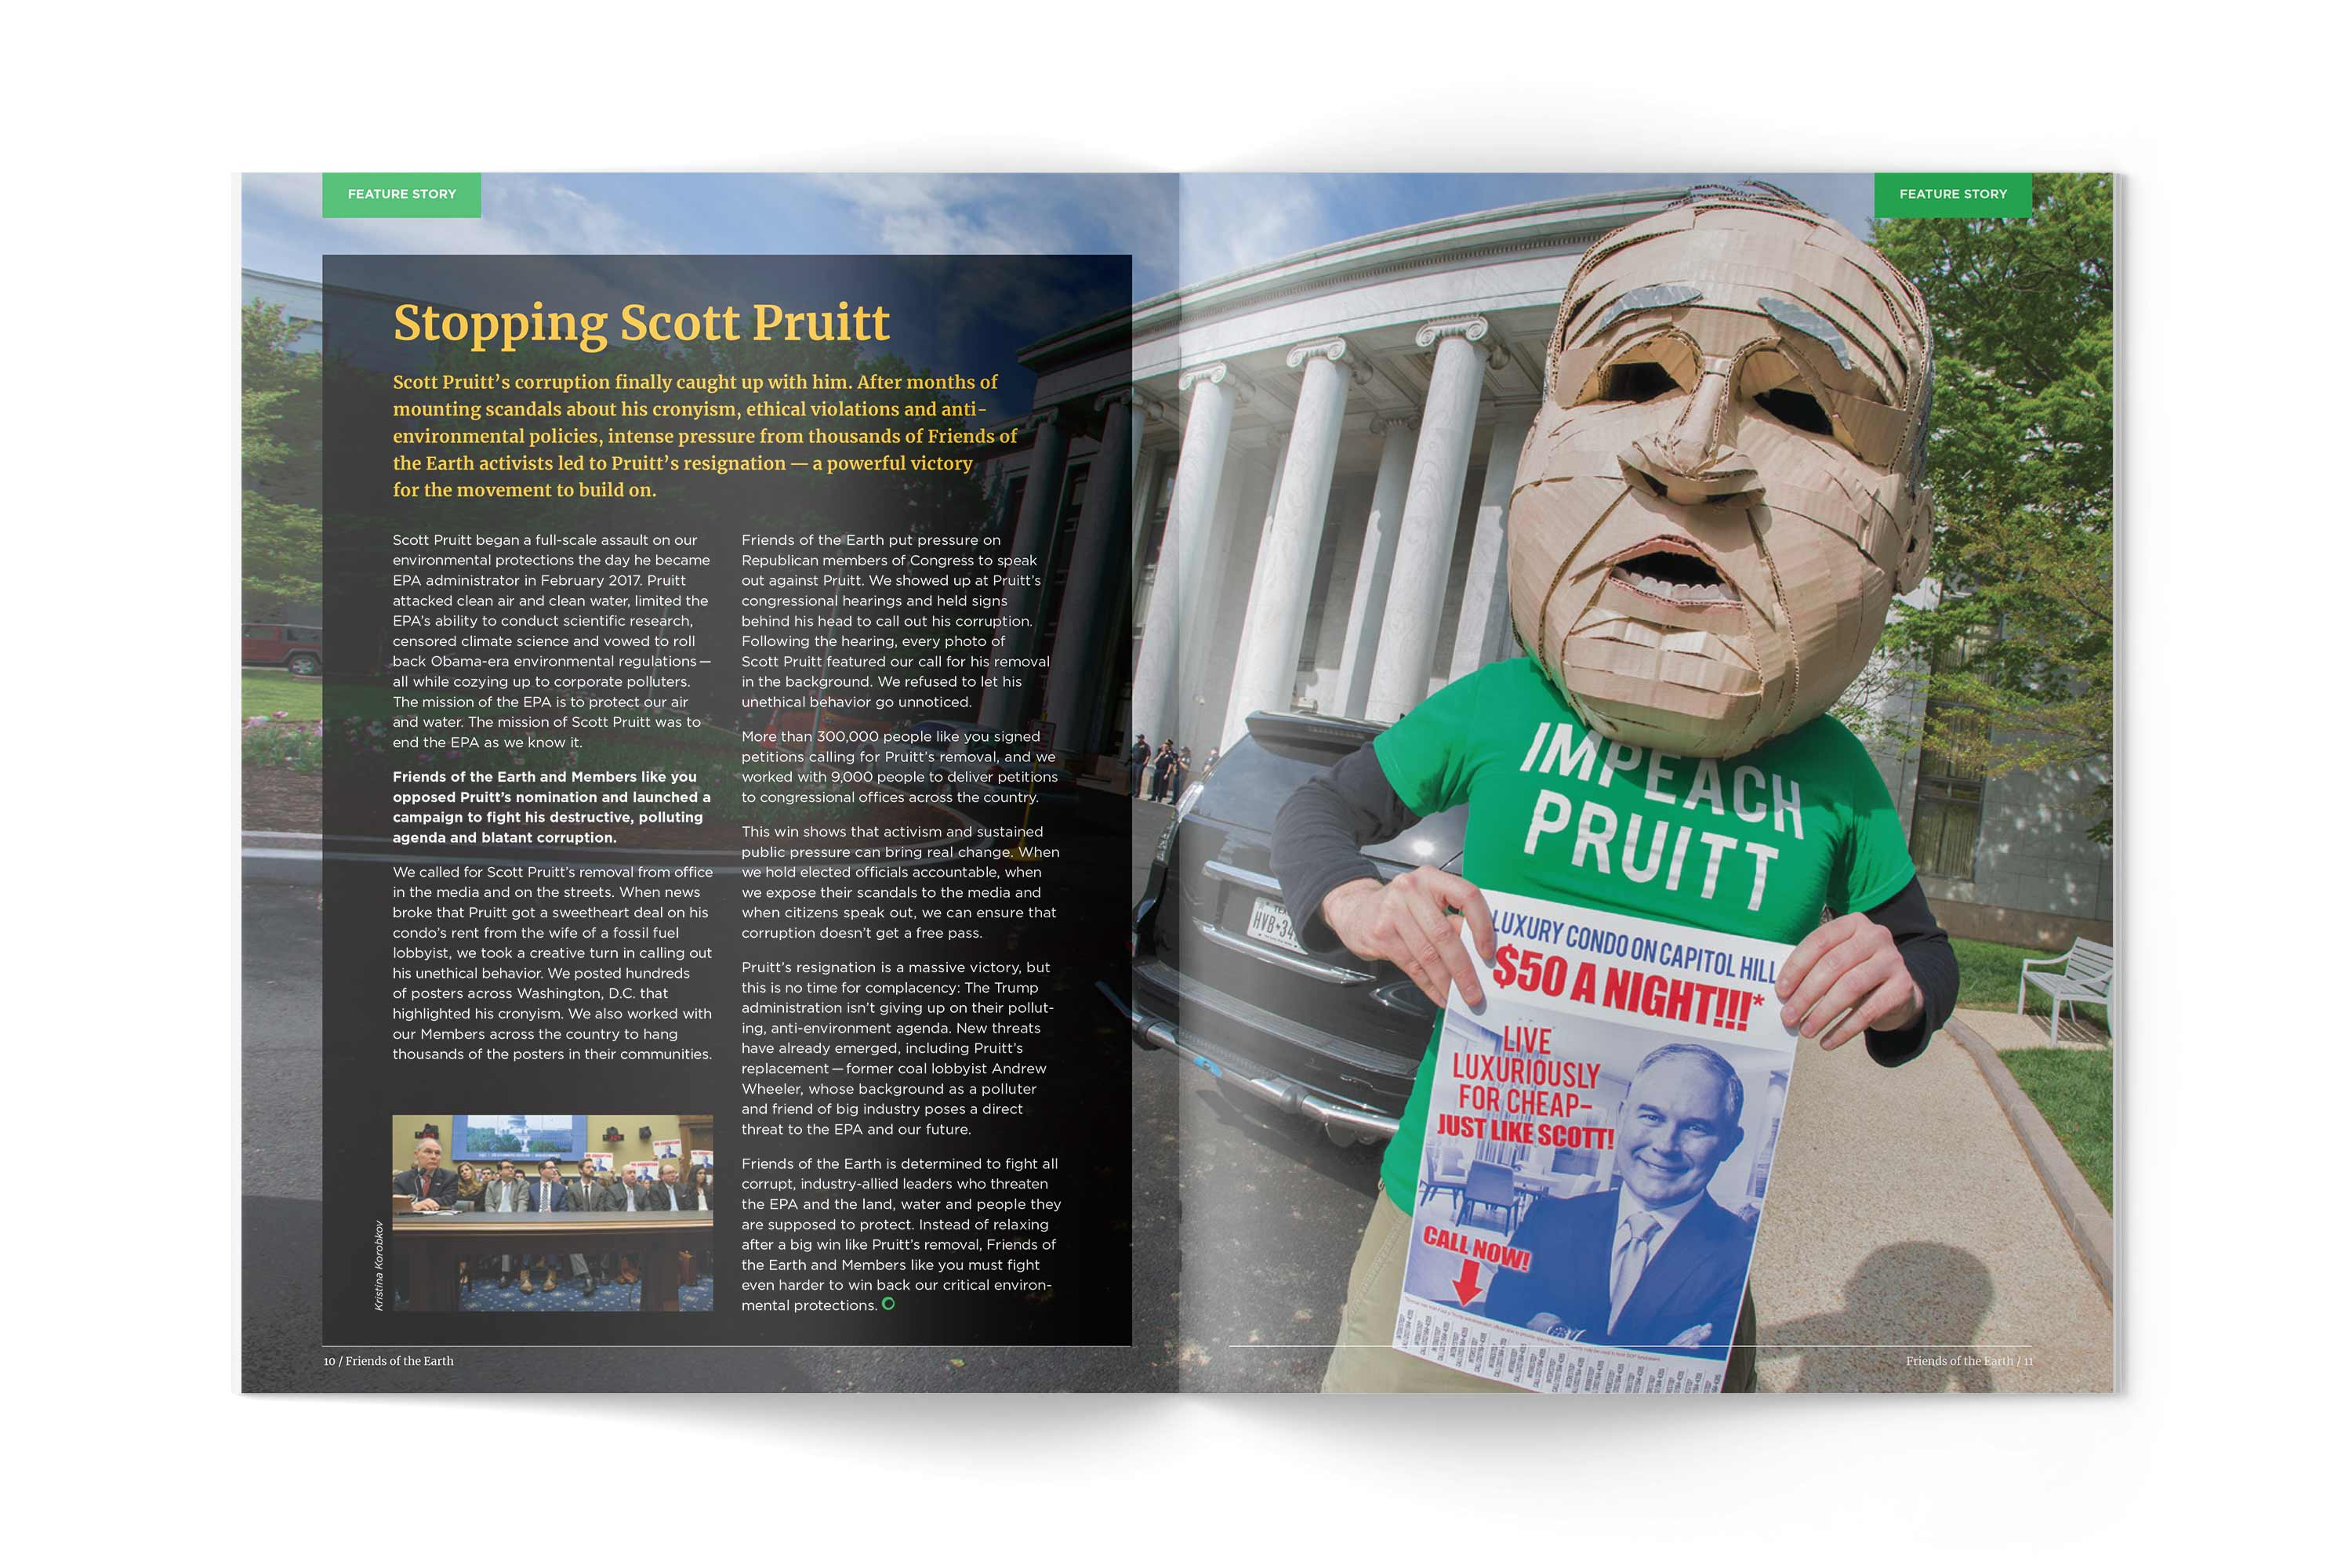 Friends of the Earth article about Scott Pruitt